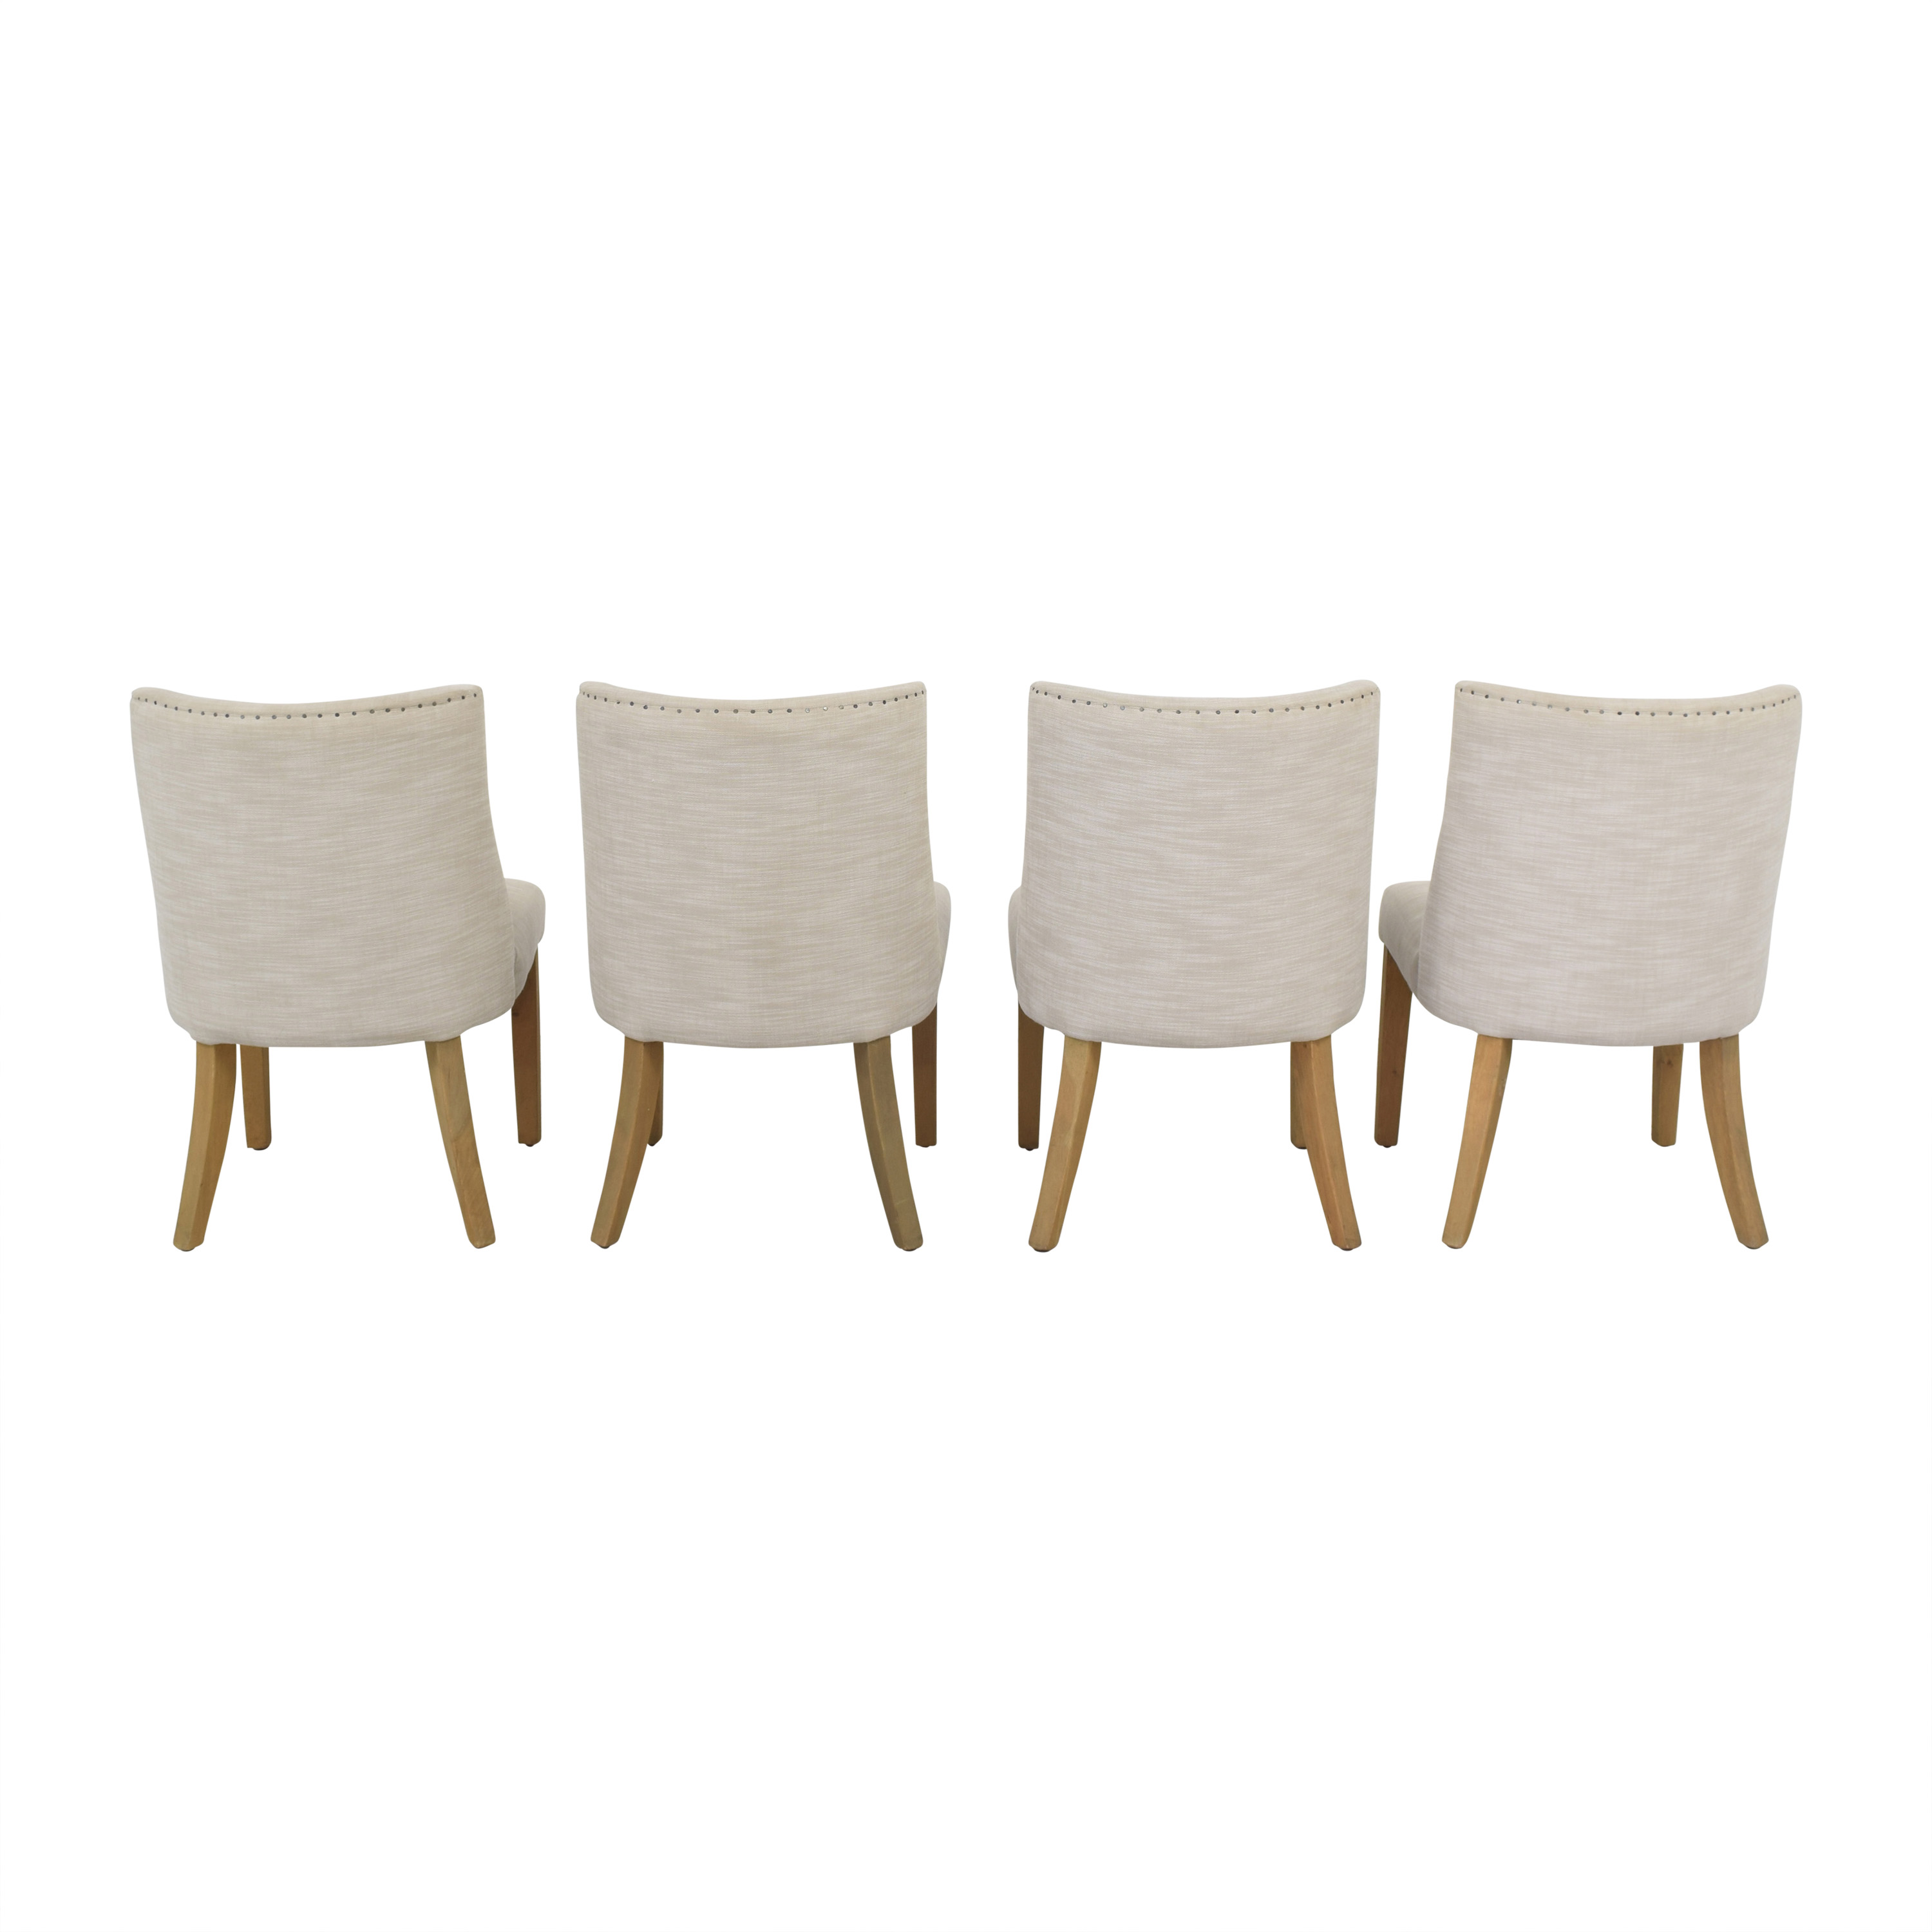 Restoration Hardware 1940s French Barrelback Fabric Side Chairs / Chairs